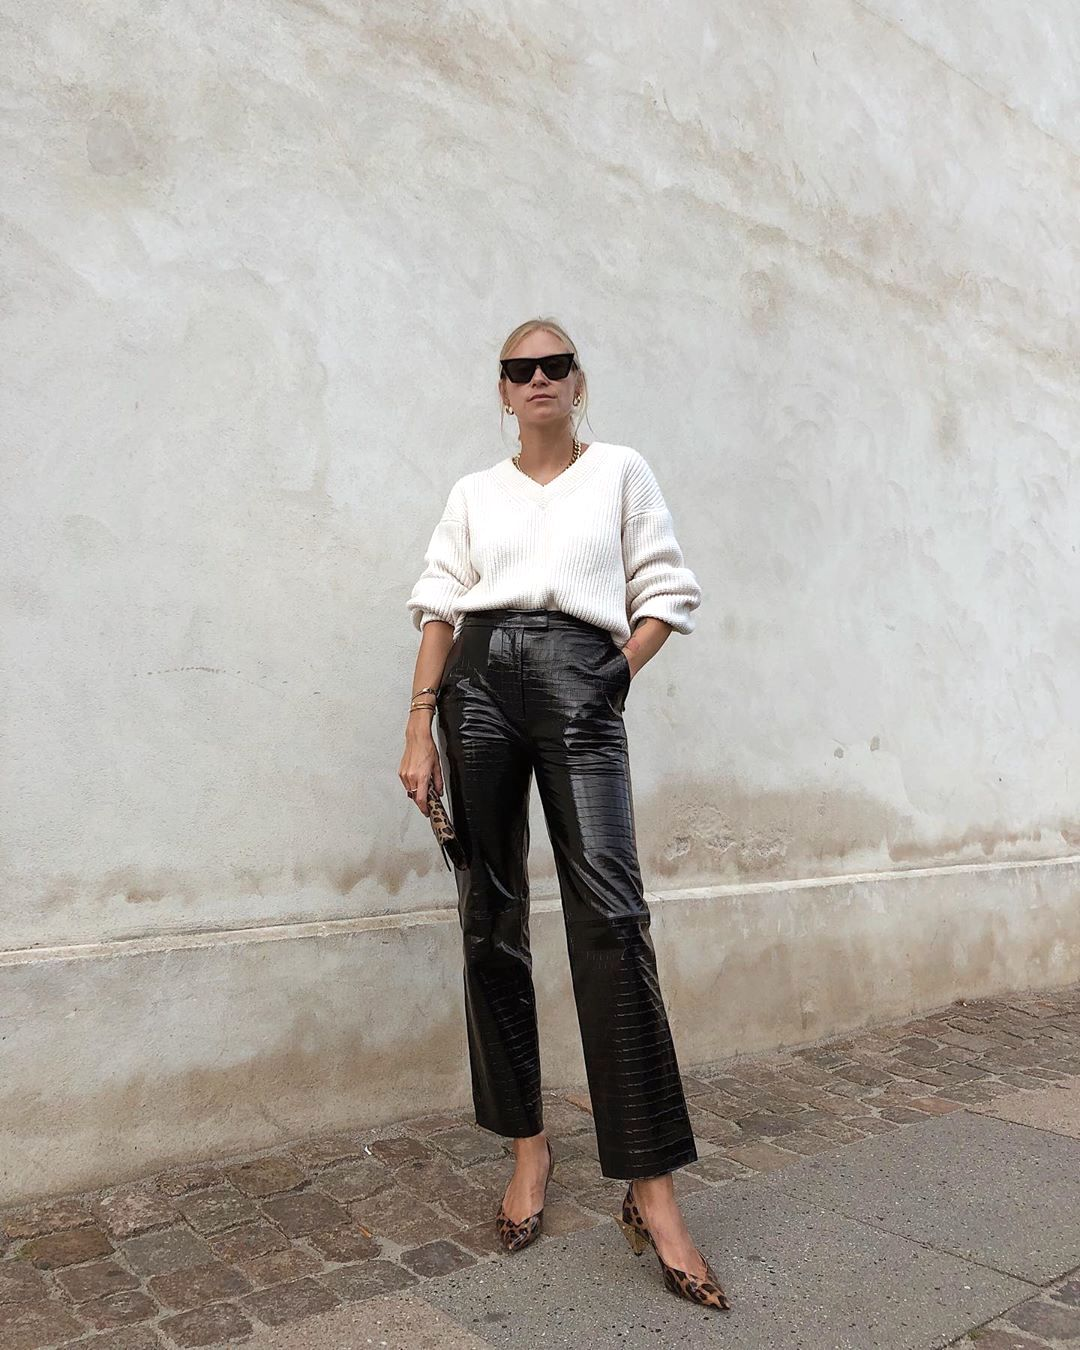 Transitional Spring Outfit Idea — Tine Andreea in square cat-eye sunglasses, white v-neck sweater, black crob patent leather pants, and leopard-print heels